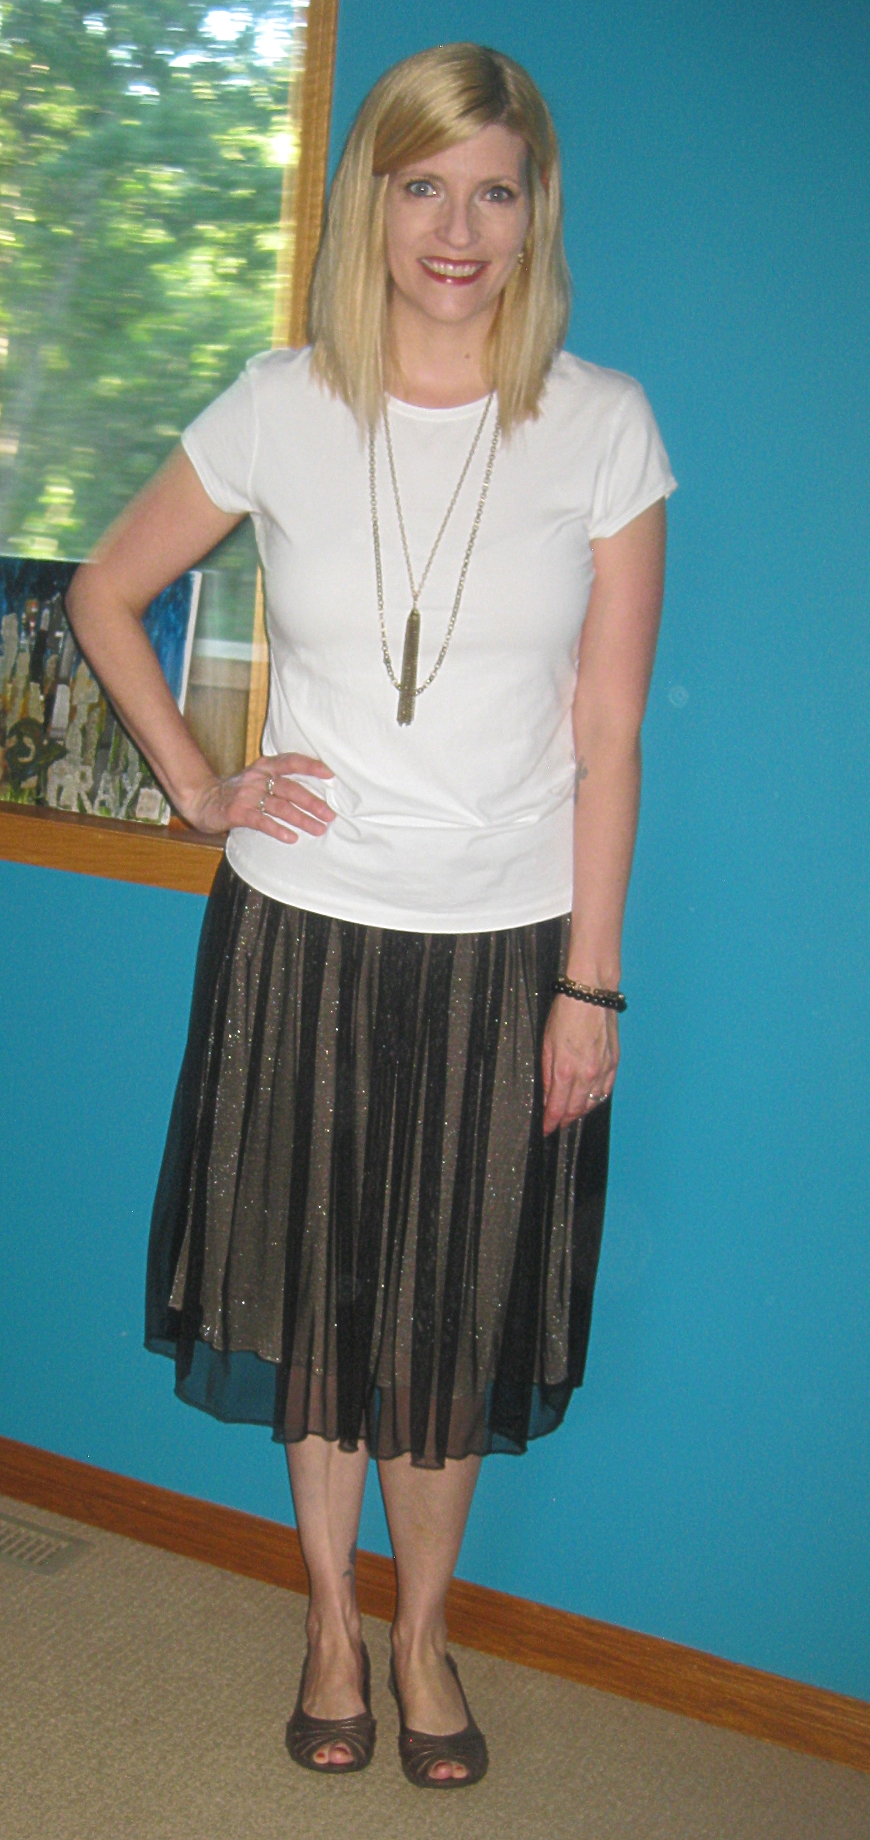 Tee and tulle make for a happy Friday!